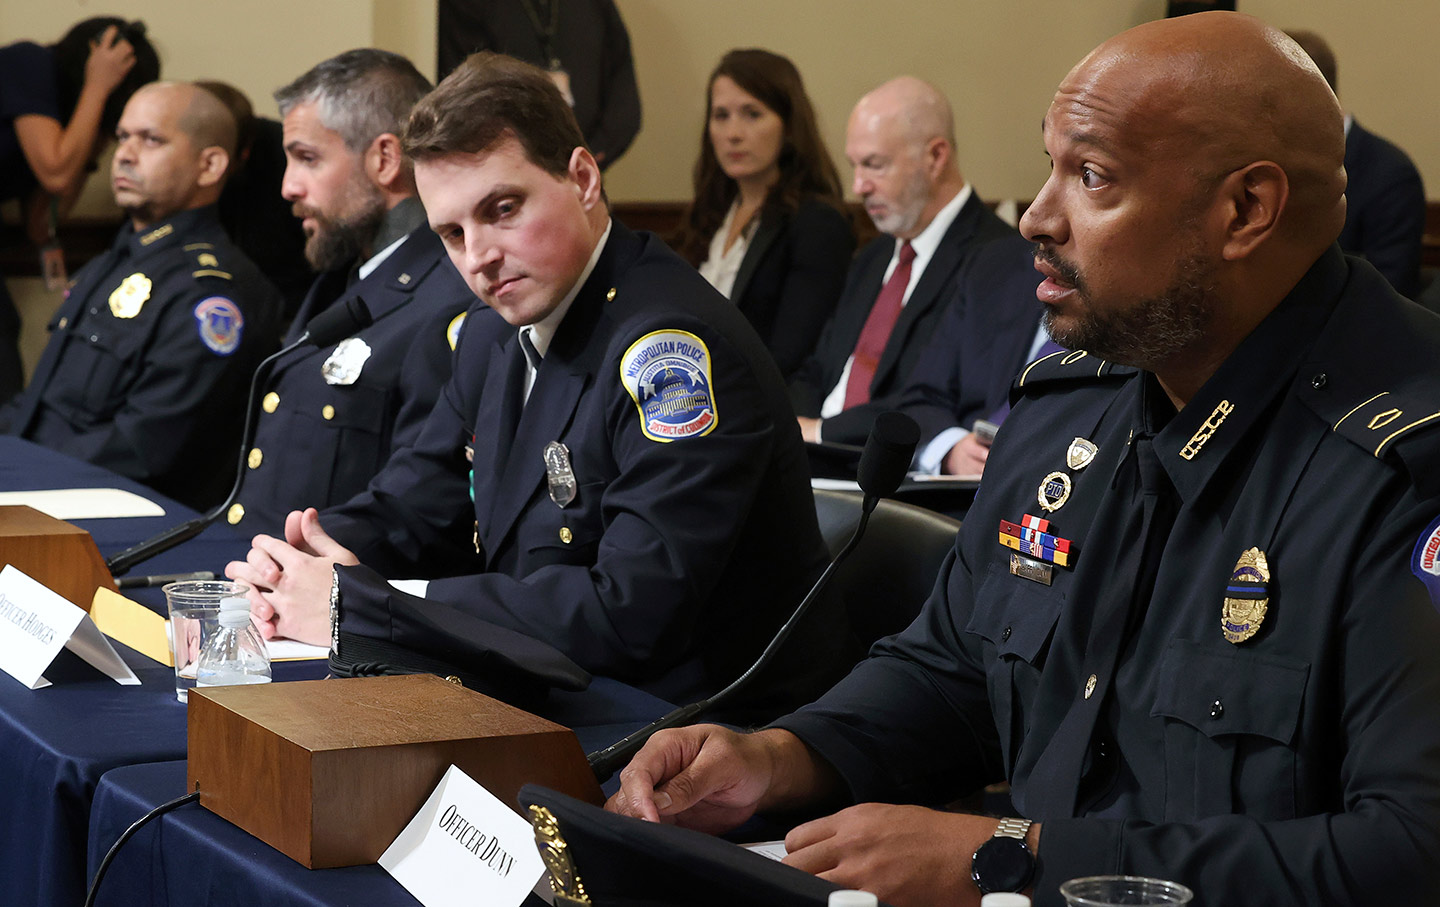 Police officers testifying at January 6th hearings